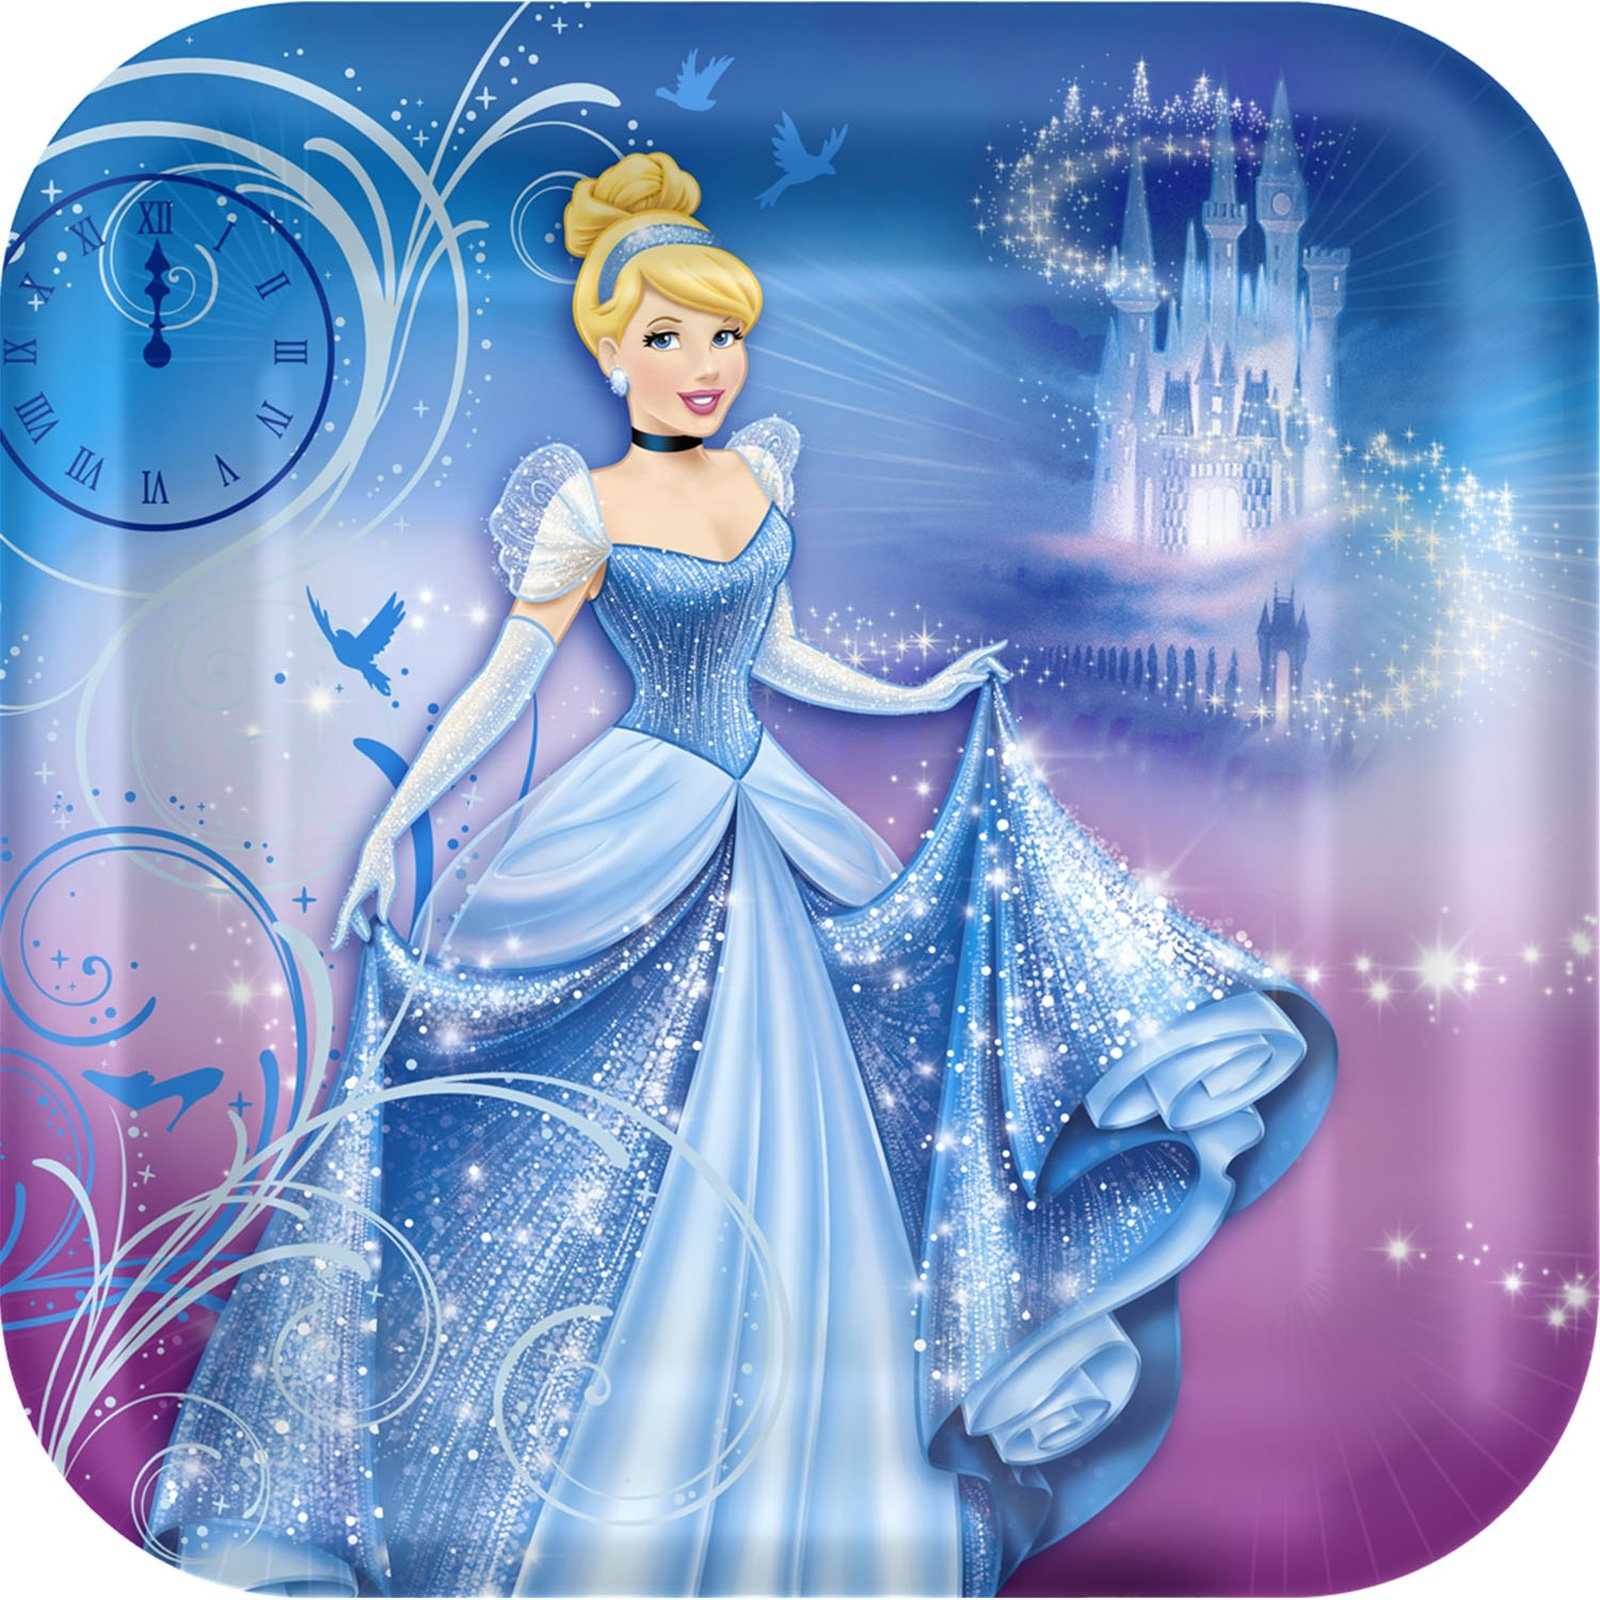 disney cinderella princess free wallpaper